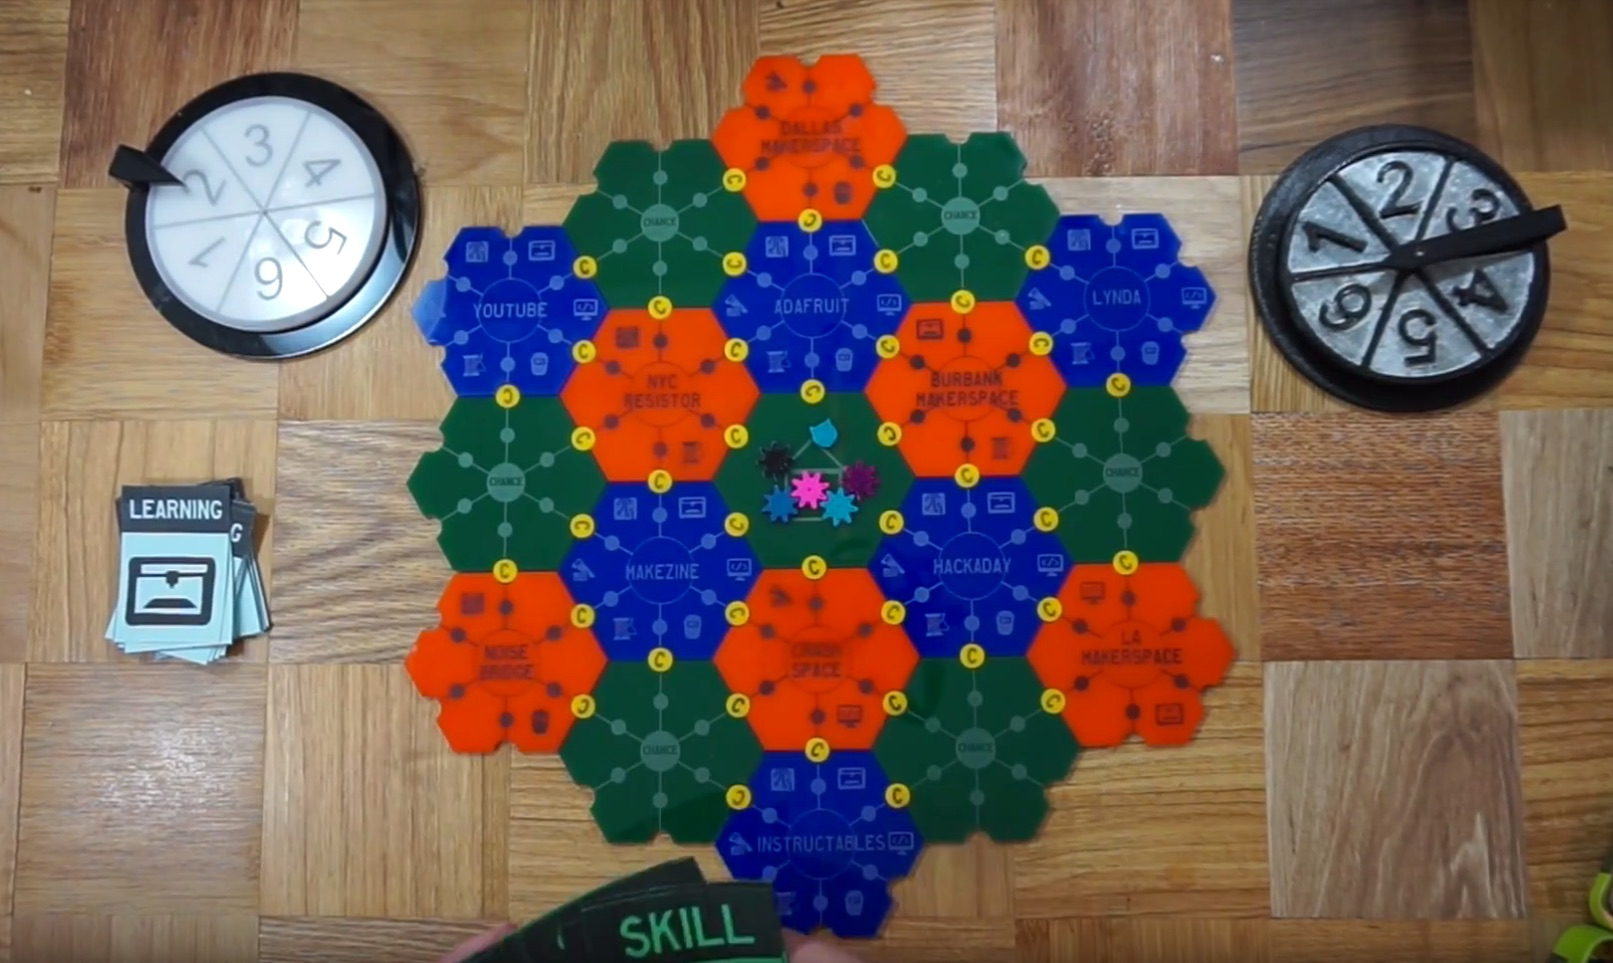 Download and Print Maker Mayhem, the Hackerspace Board Game